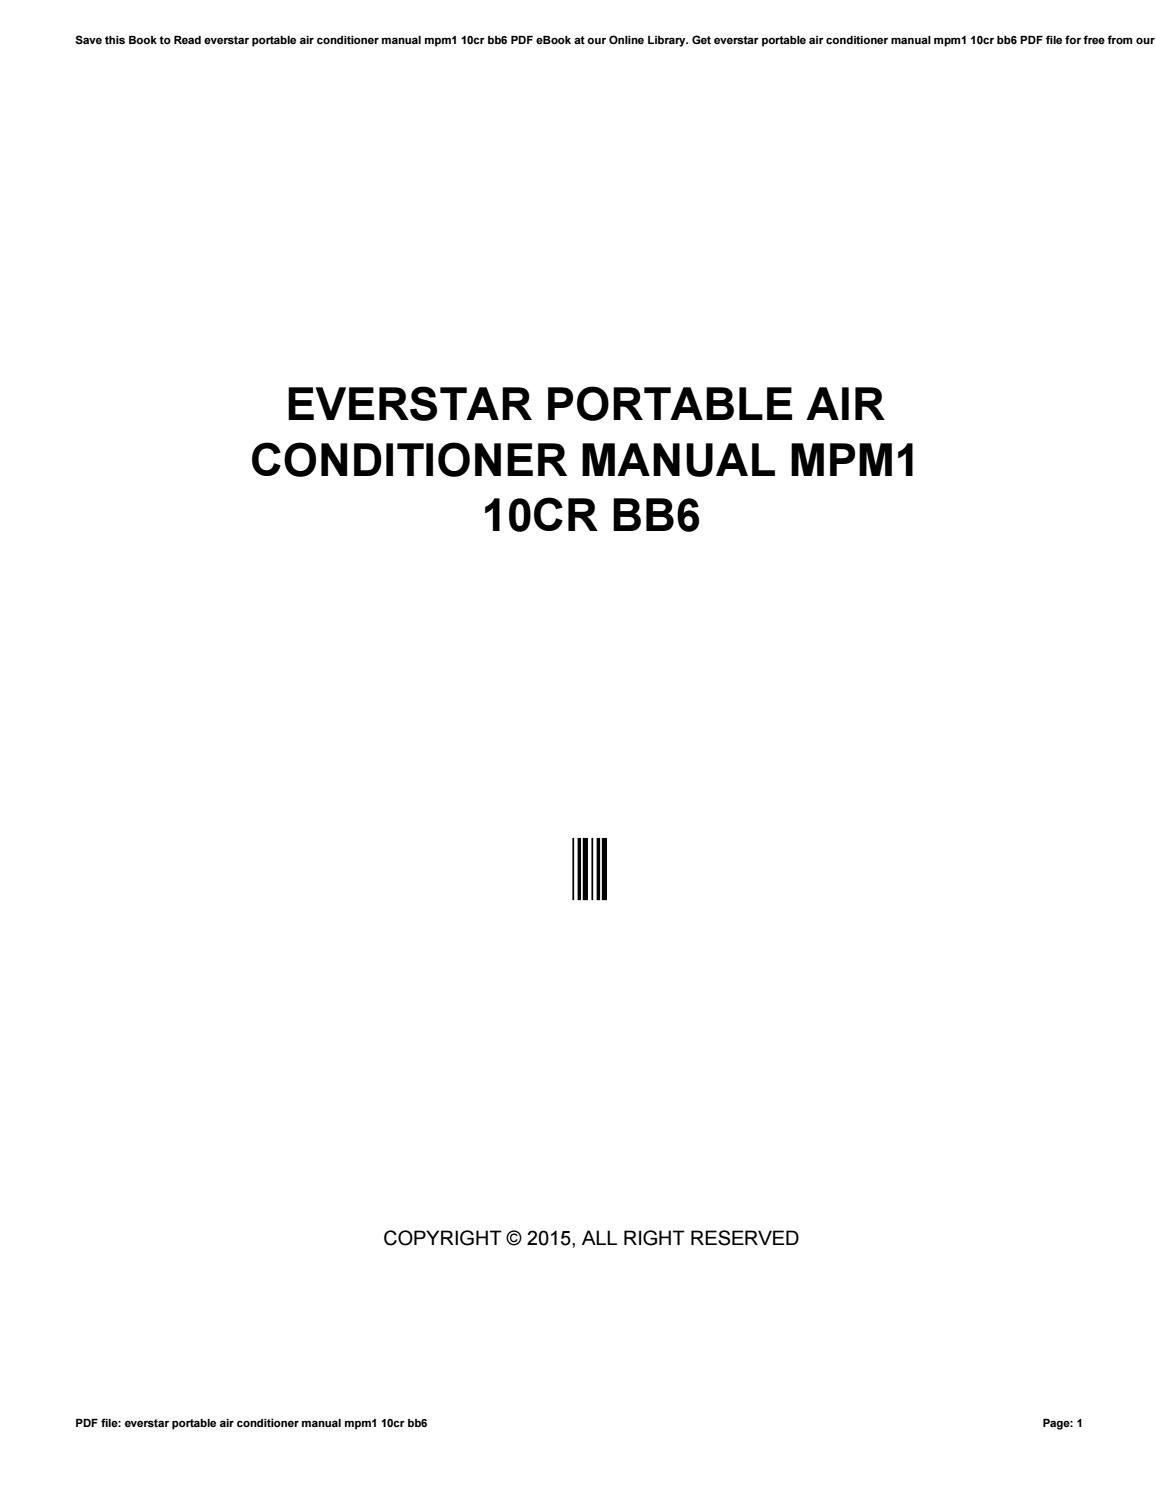 Everstar portable air conditioner manual mpm1 10cr bb6 by anaya65nolama -  issuu